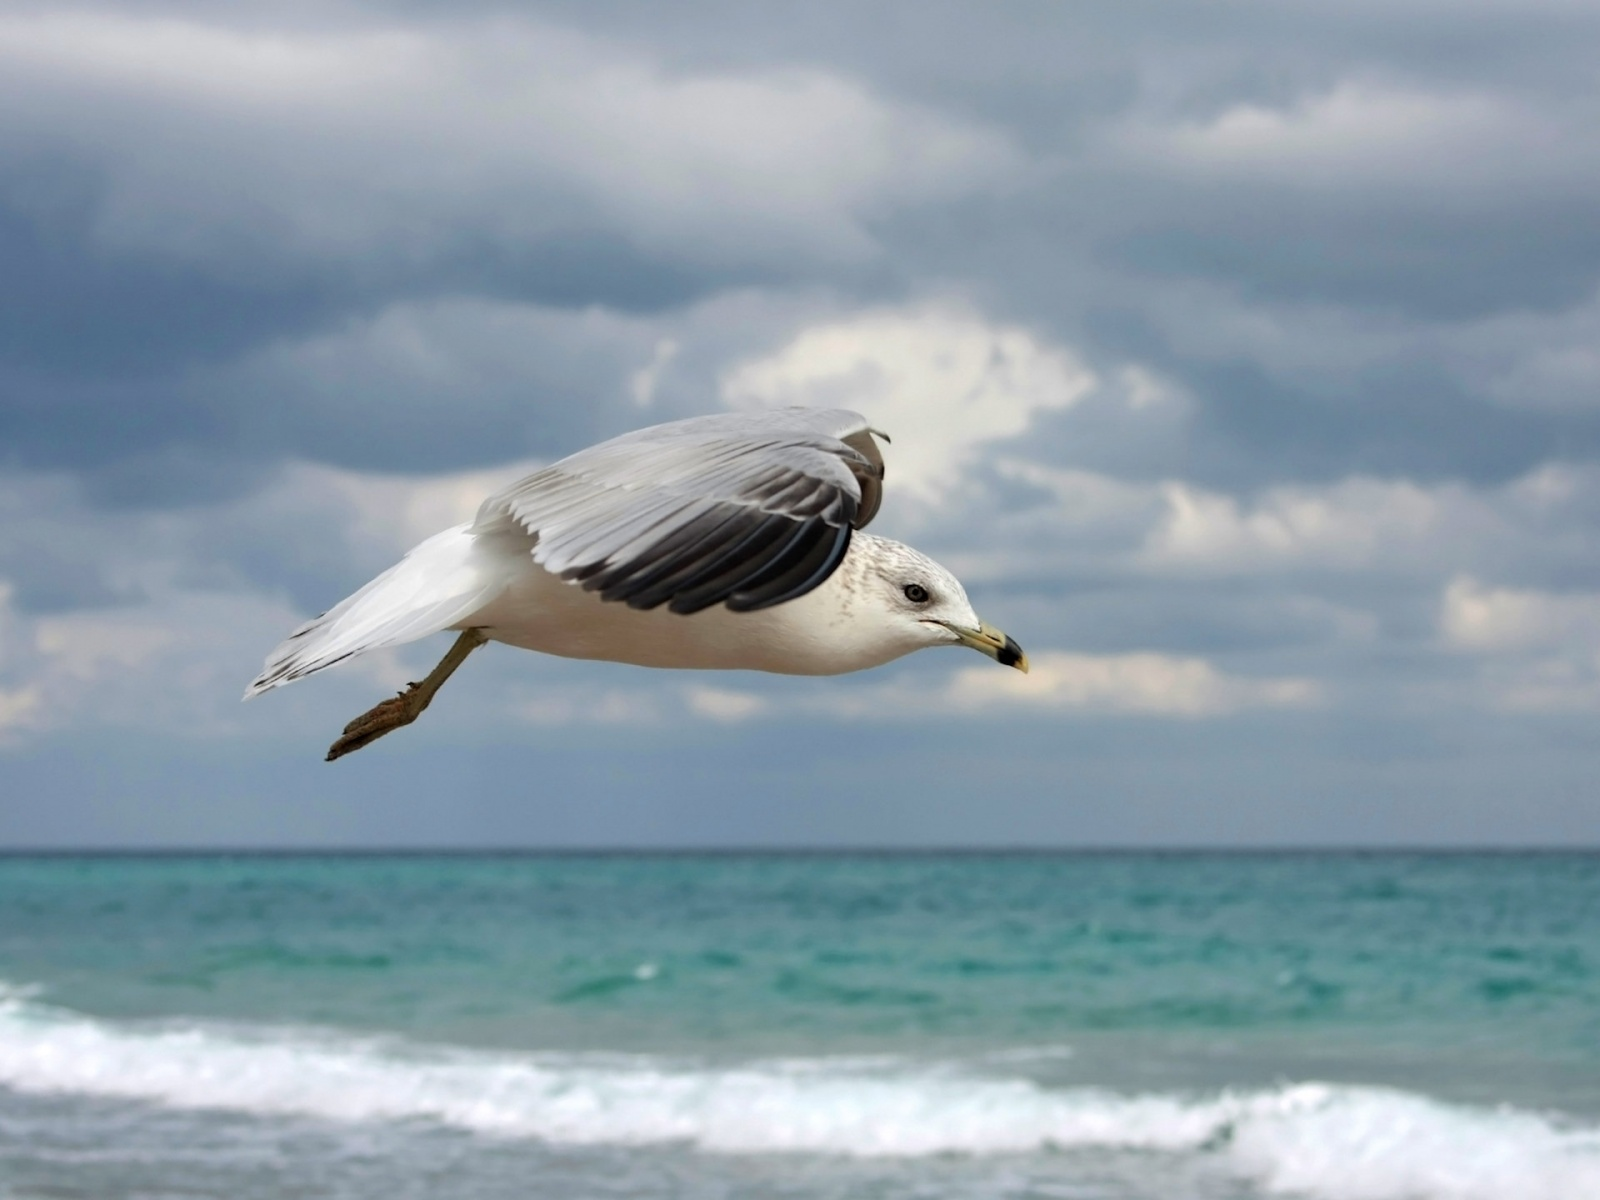 Wallpaper Collections Gull Backgrounds